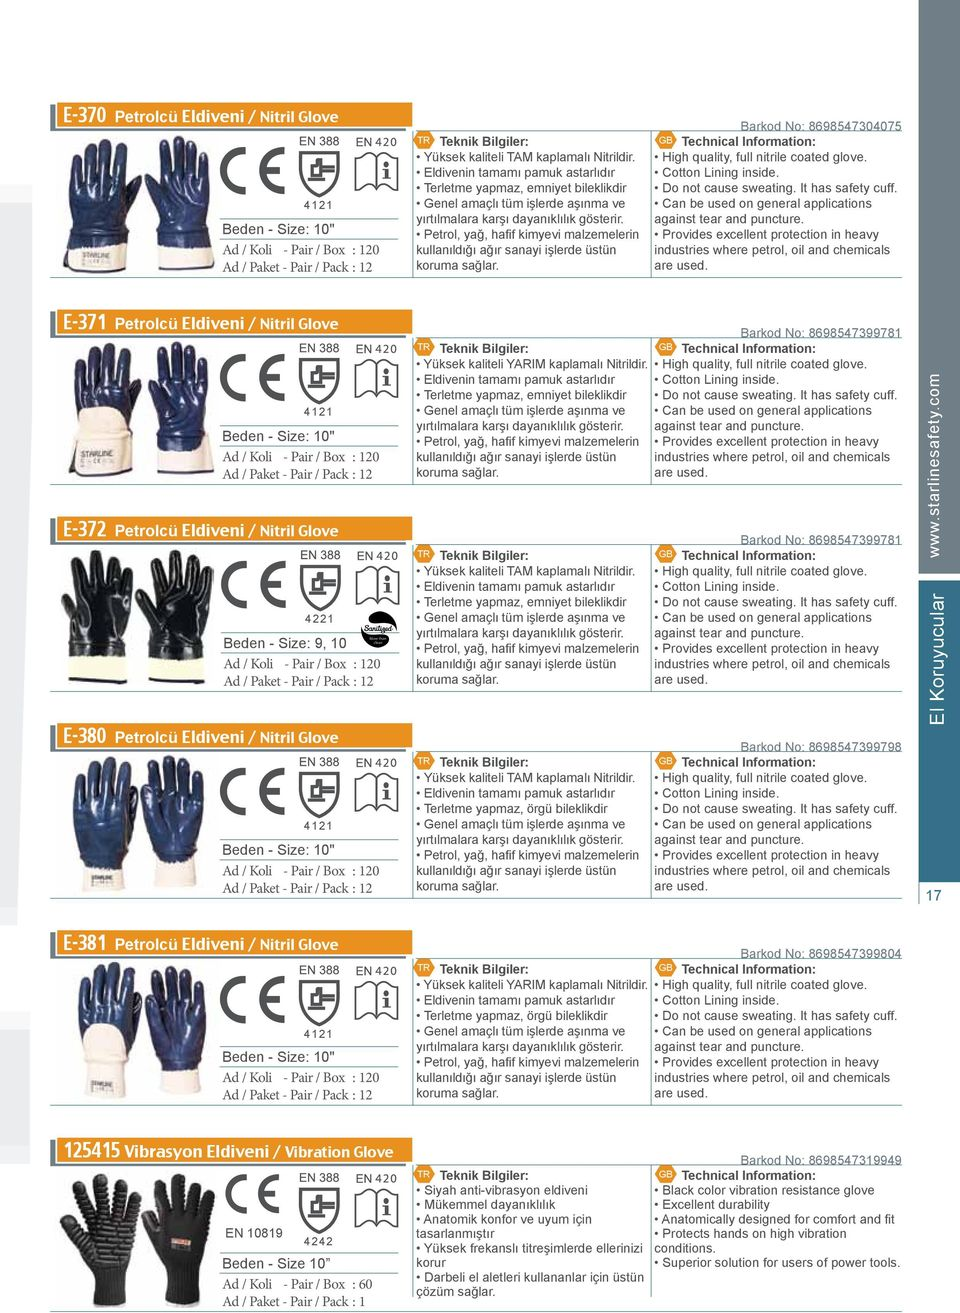 Petrol, yağ, hafif kimyevi malzemelerin kullanıldığı ağır sanayi işlerde üstün koruma sağlar. Barkod No: 8698547304075 High quality, full nitrile coated glove. Cotton Lining inside.